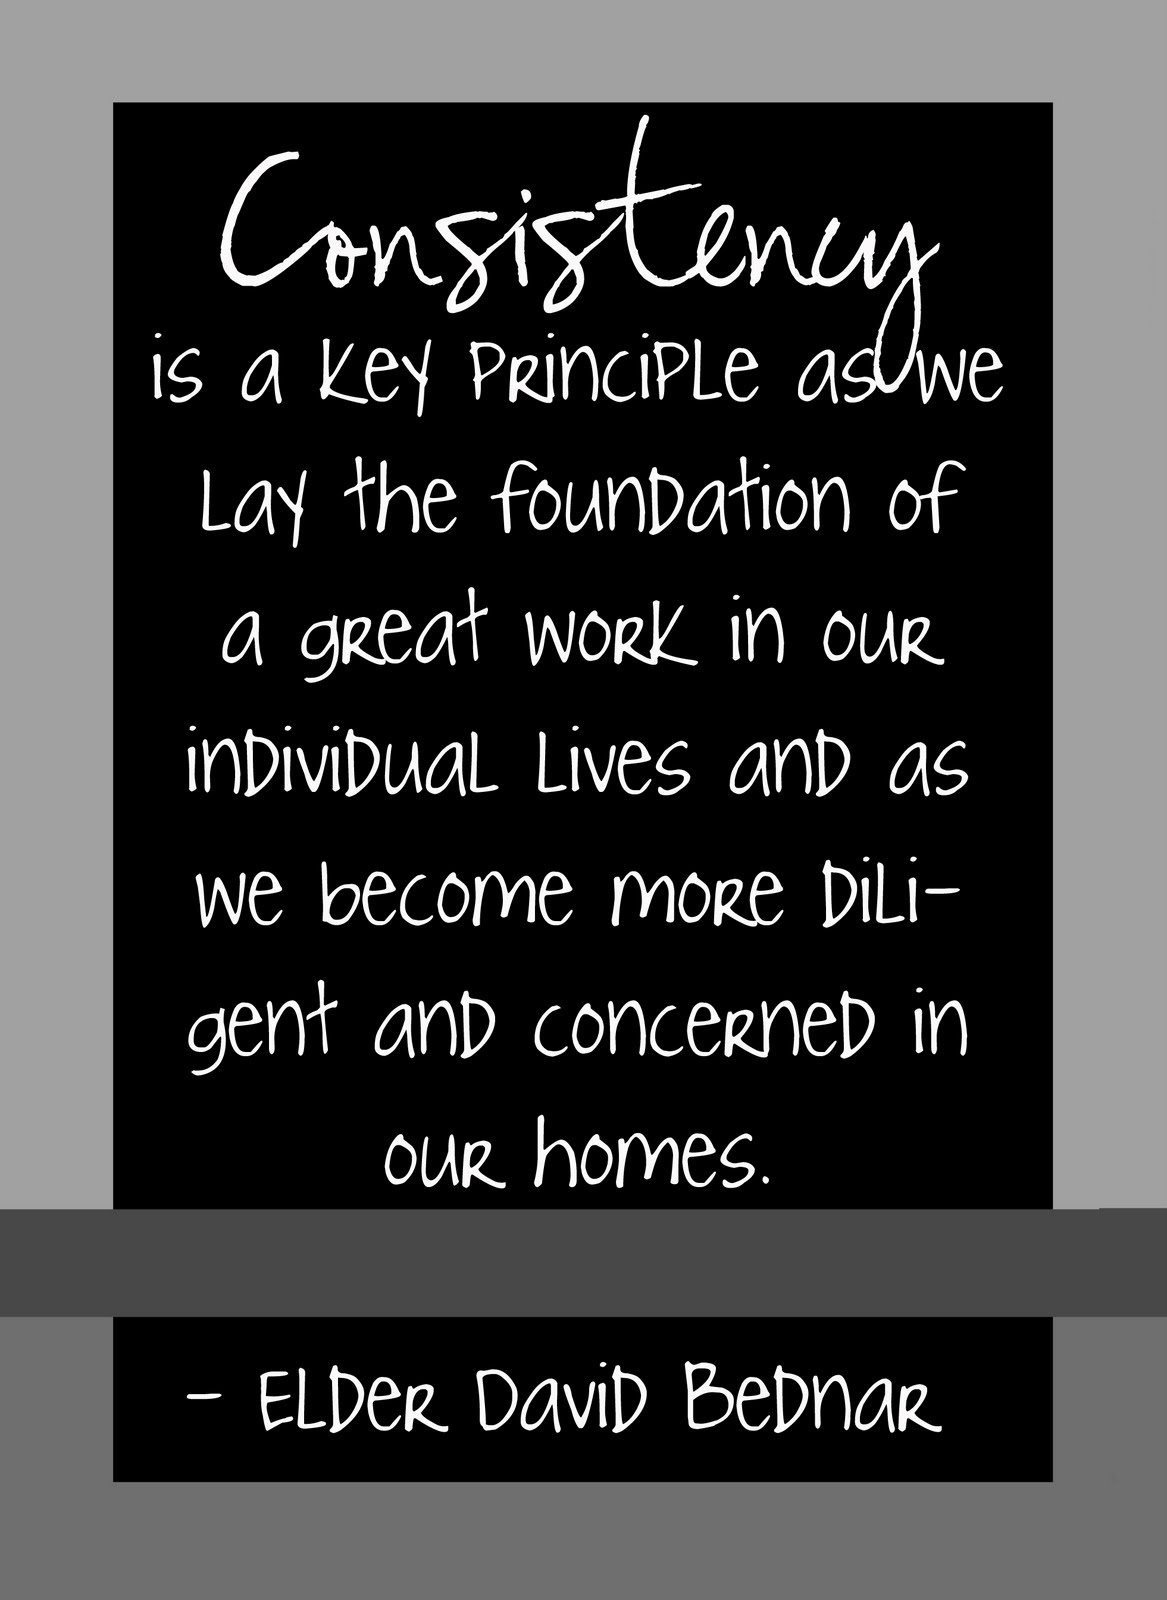 Be Consistent Quotes : consistent, quotes, Quotes, About, Consistent, Performance, Quotes)